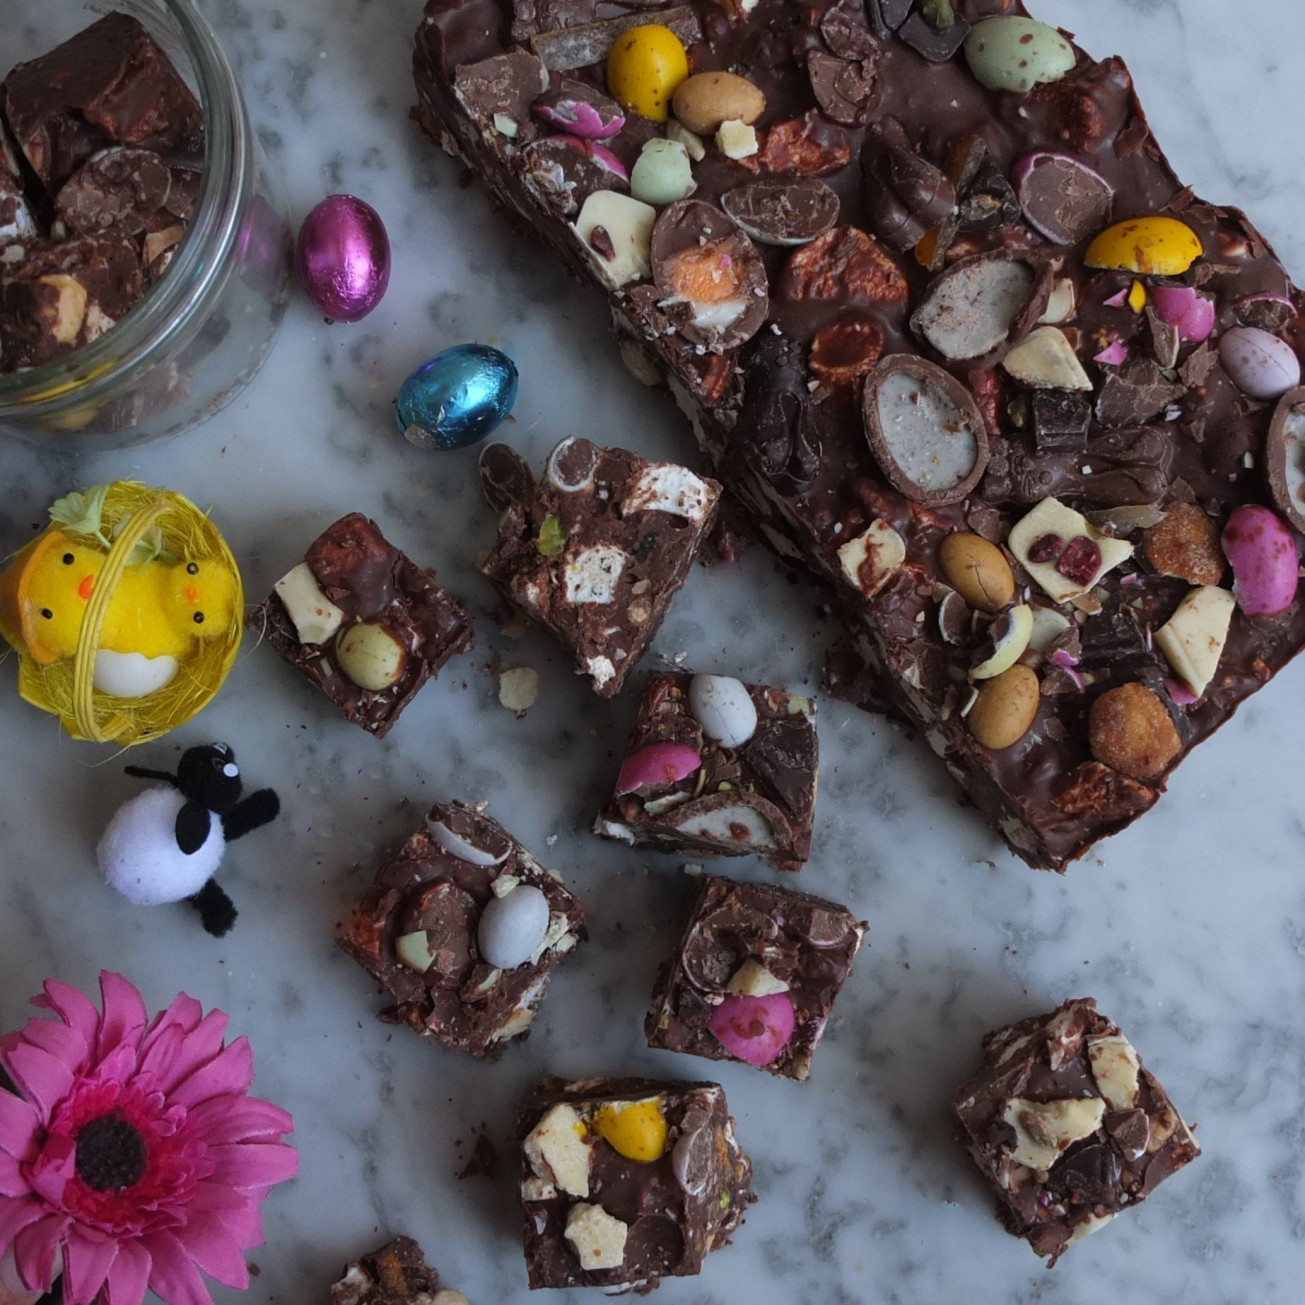 Gourmet rocky road with Easter stuff